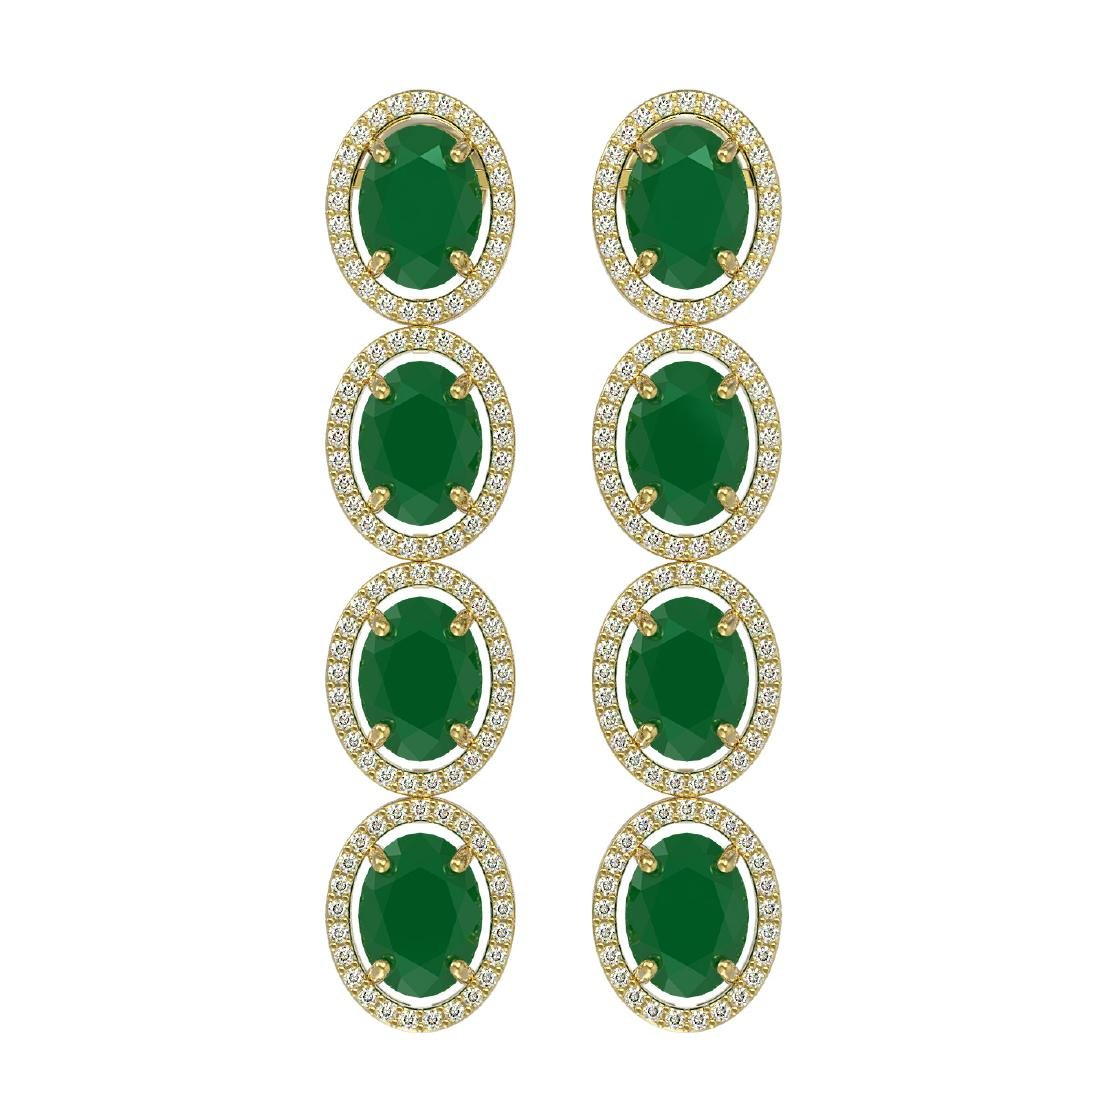 15.68 ctw Emerald & Diamond Halo Earrings 10K Yellow